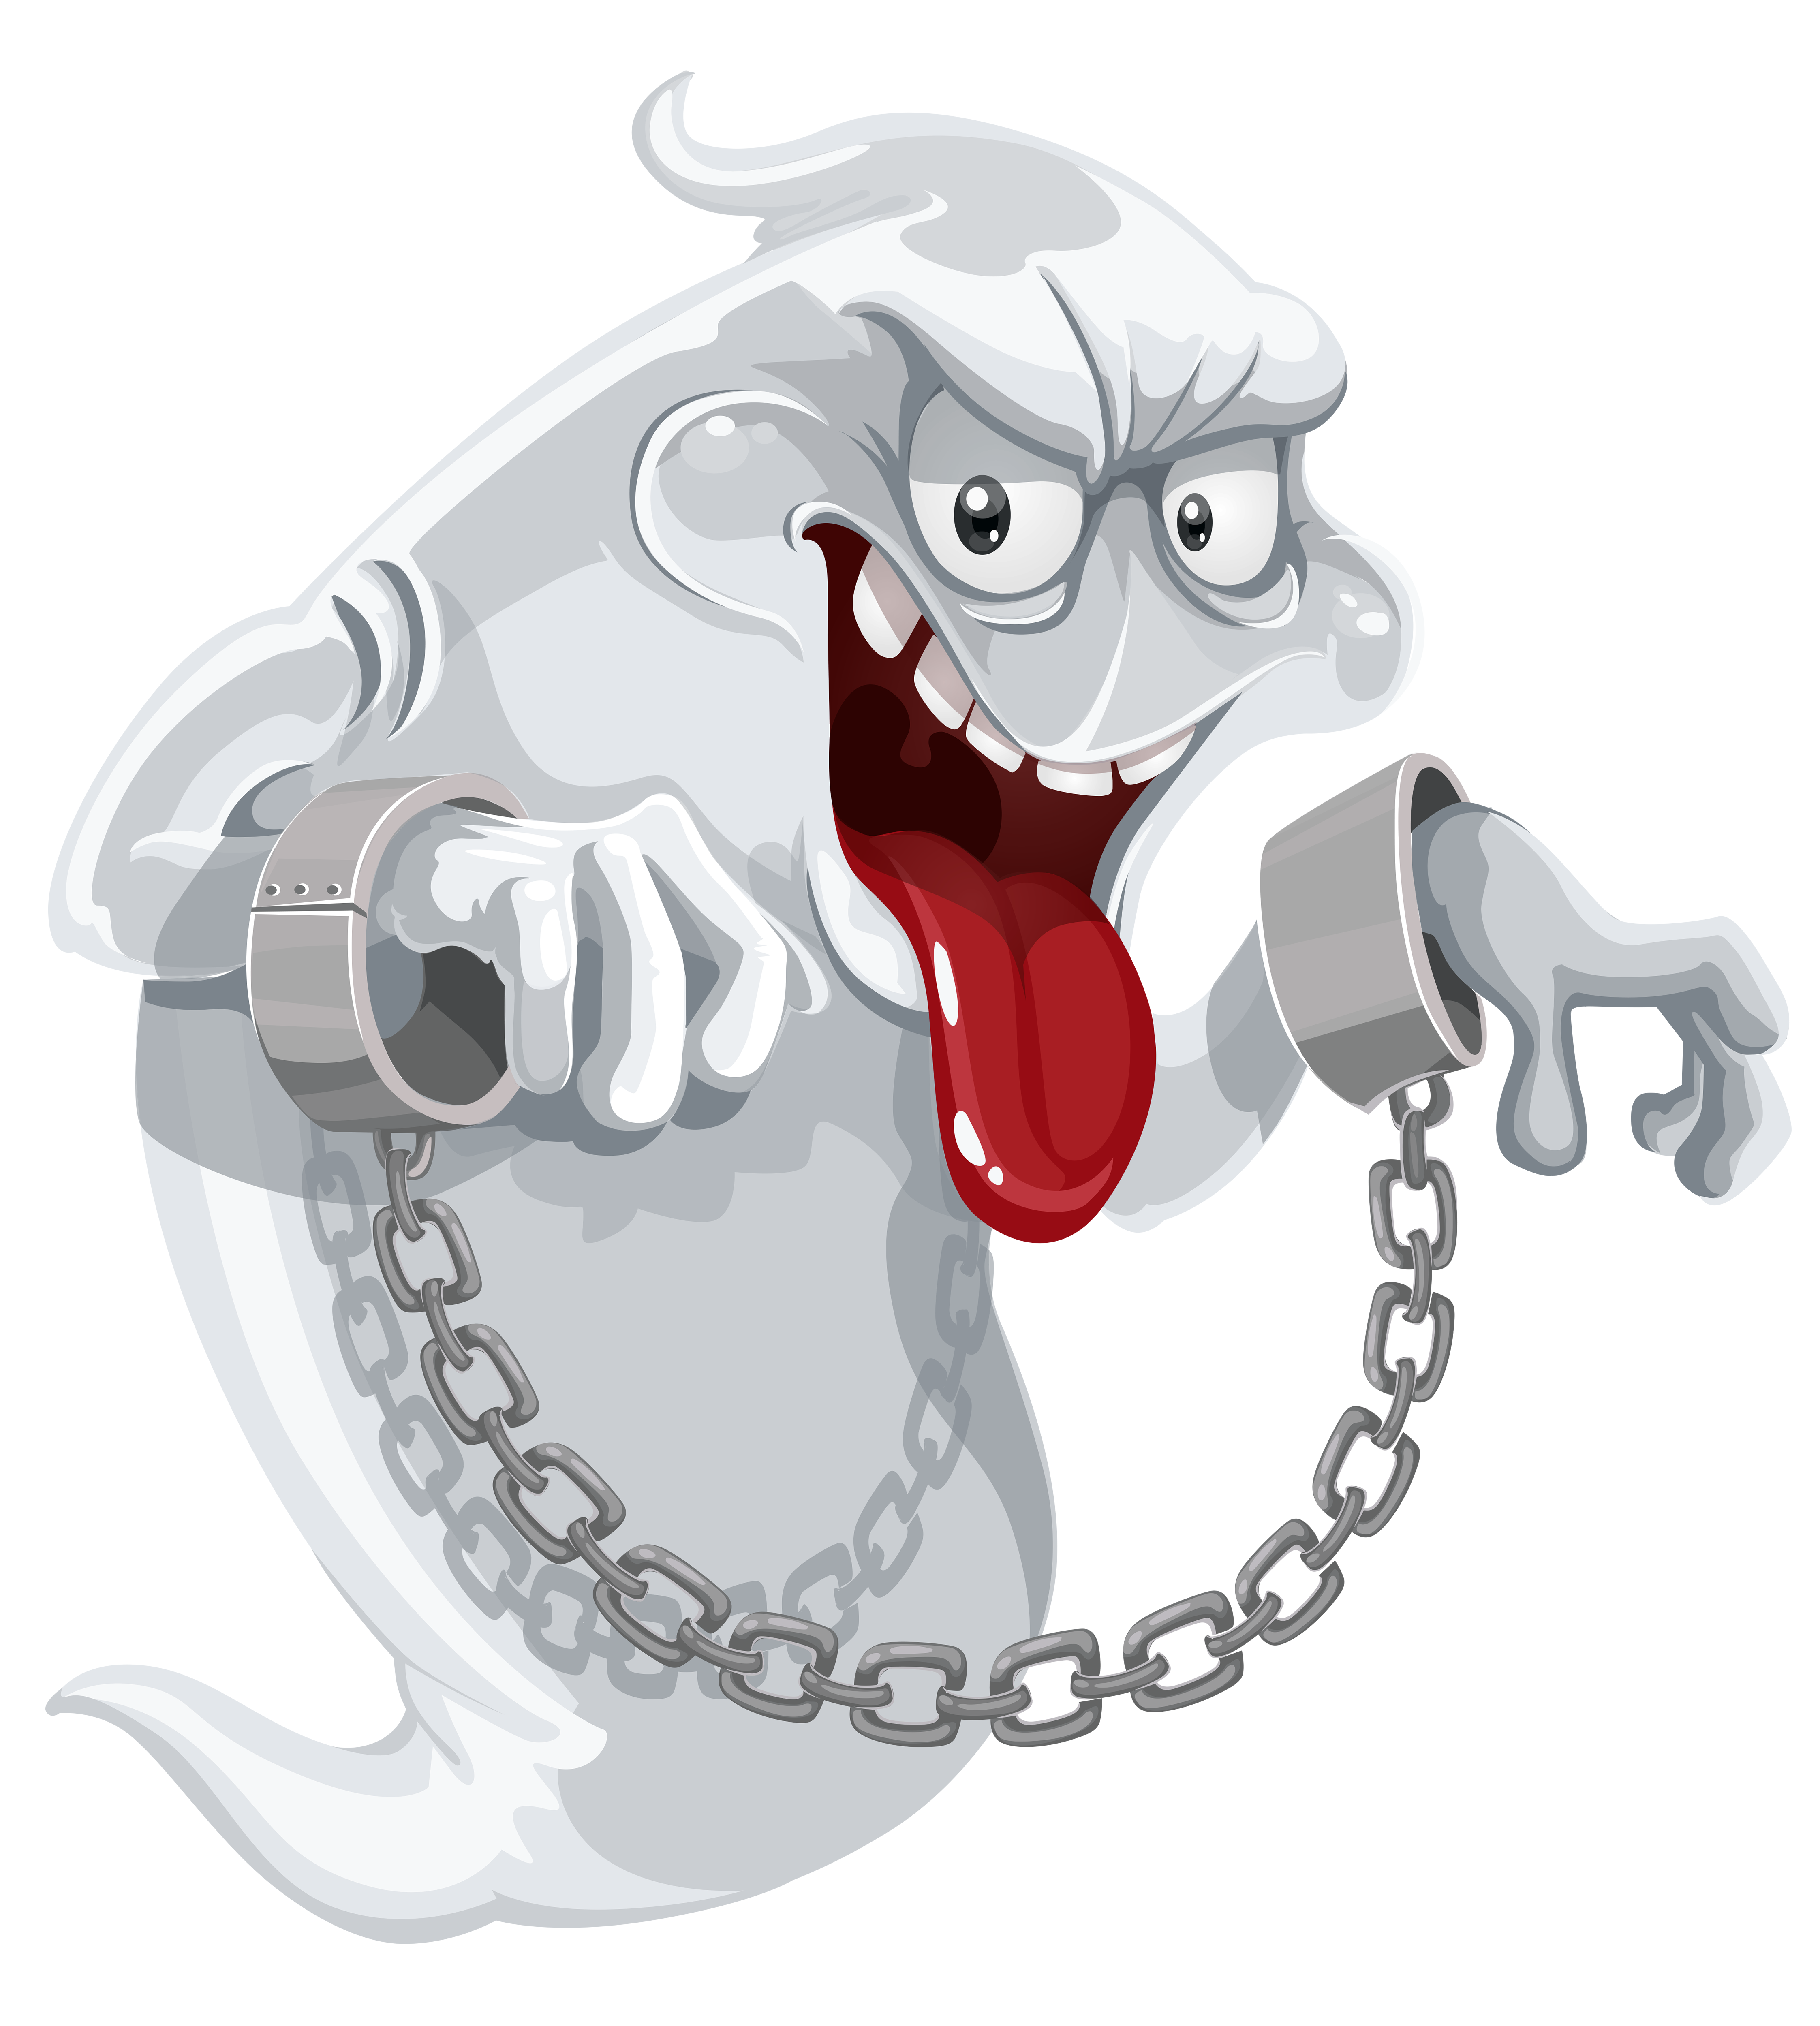 clipart Evil ghost with chains. Vampir clipart money